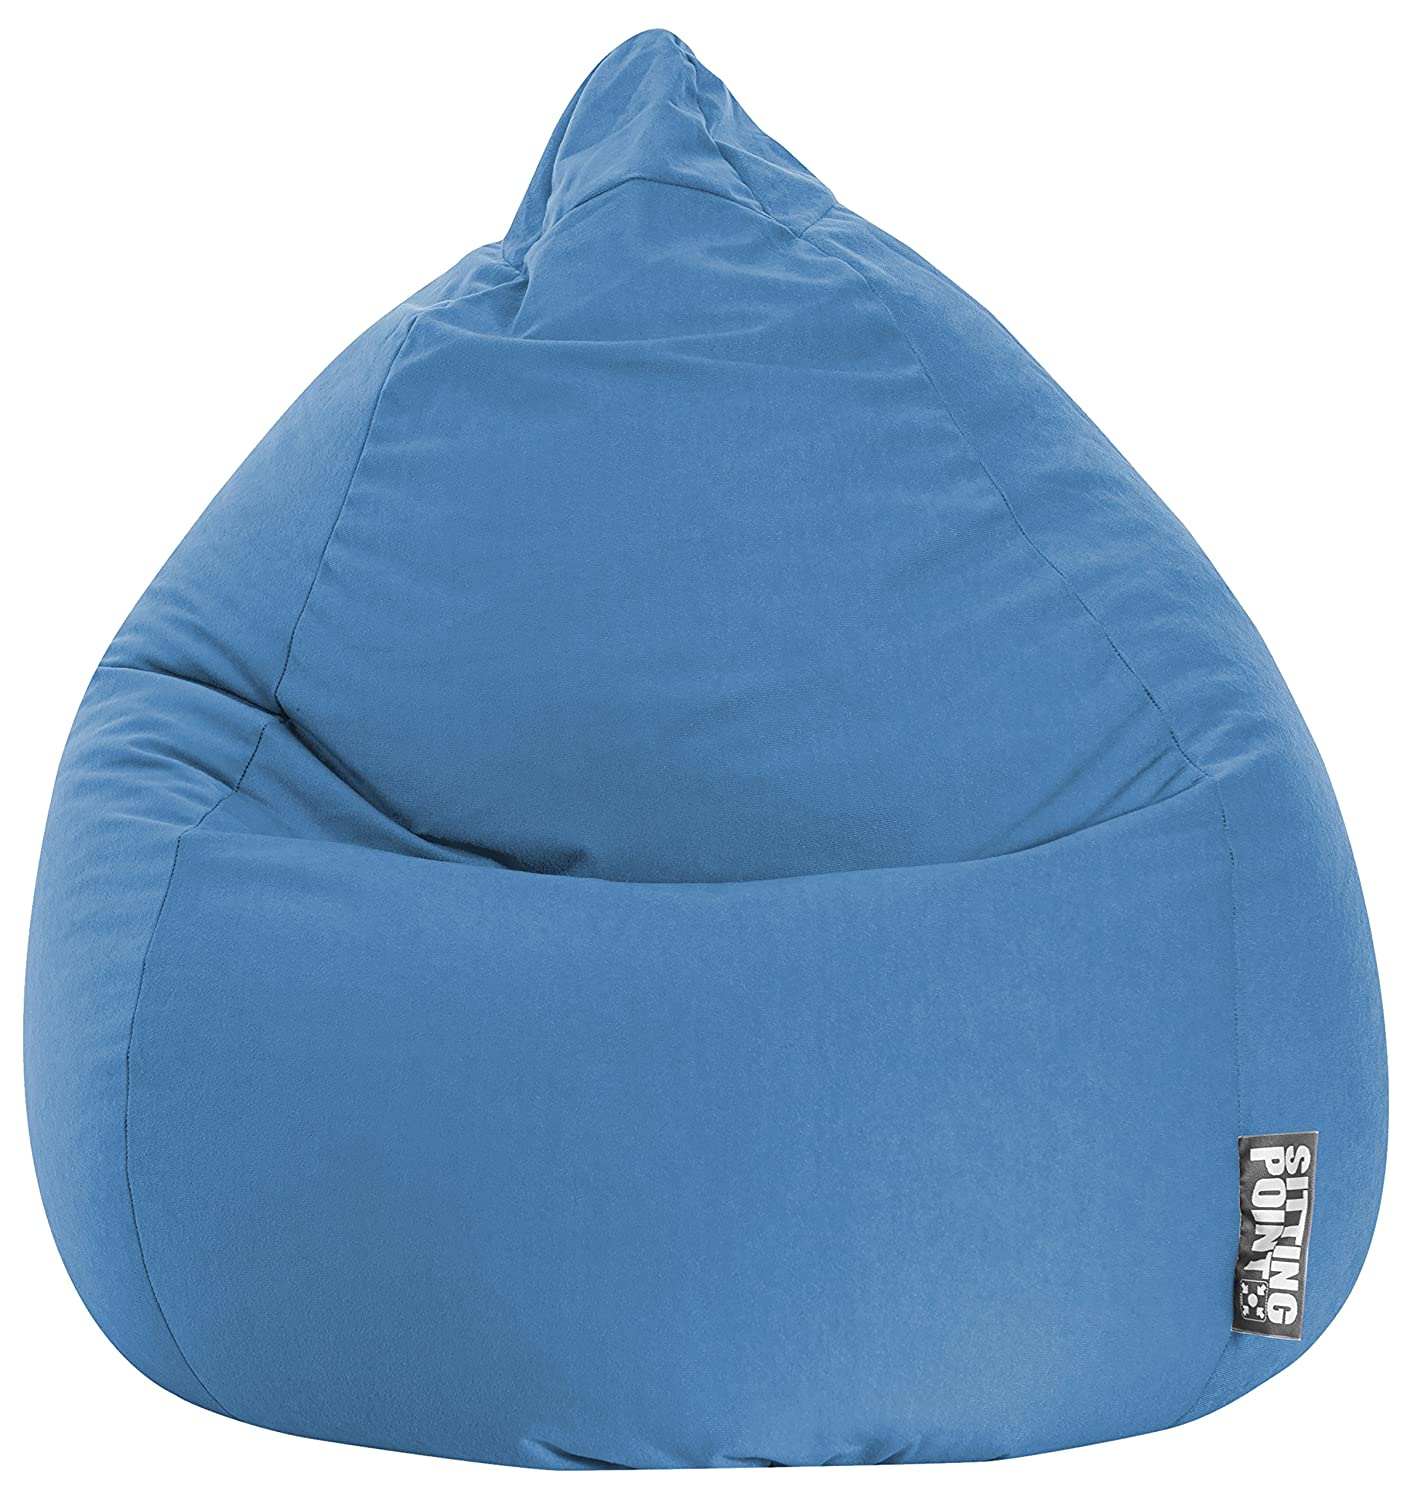 Pouf Easy, Tessuto, arancione, S Sitting Point